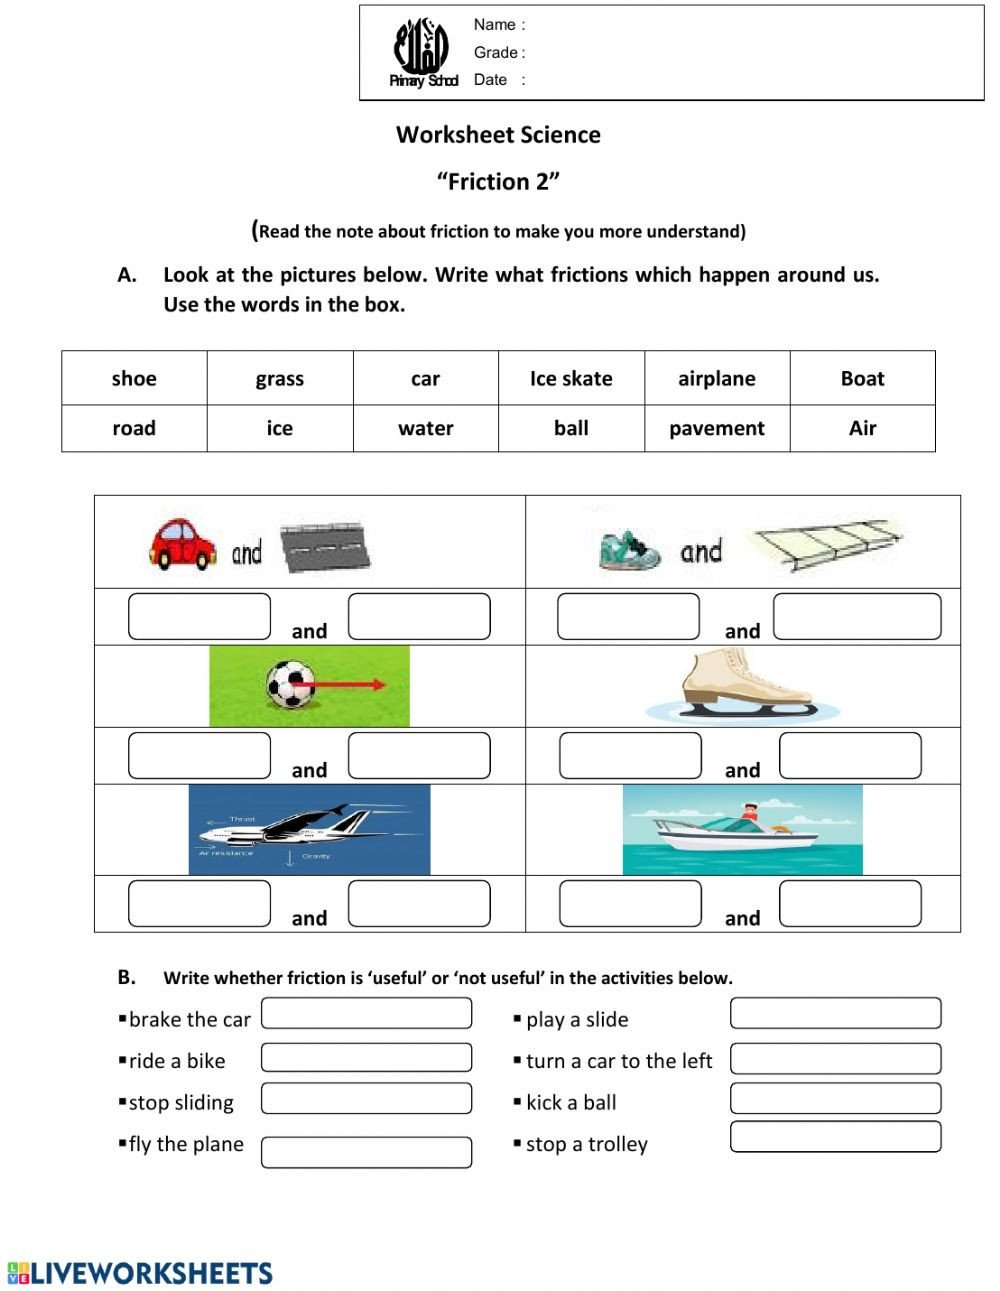 Worksheets On force and Motion Worksheet Science Friction 2 Interactive Worksheet